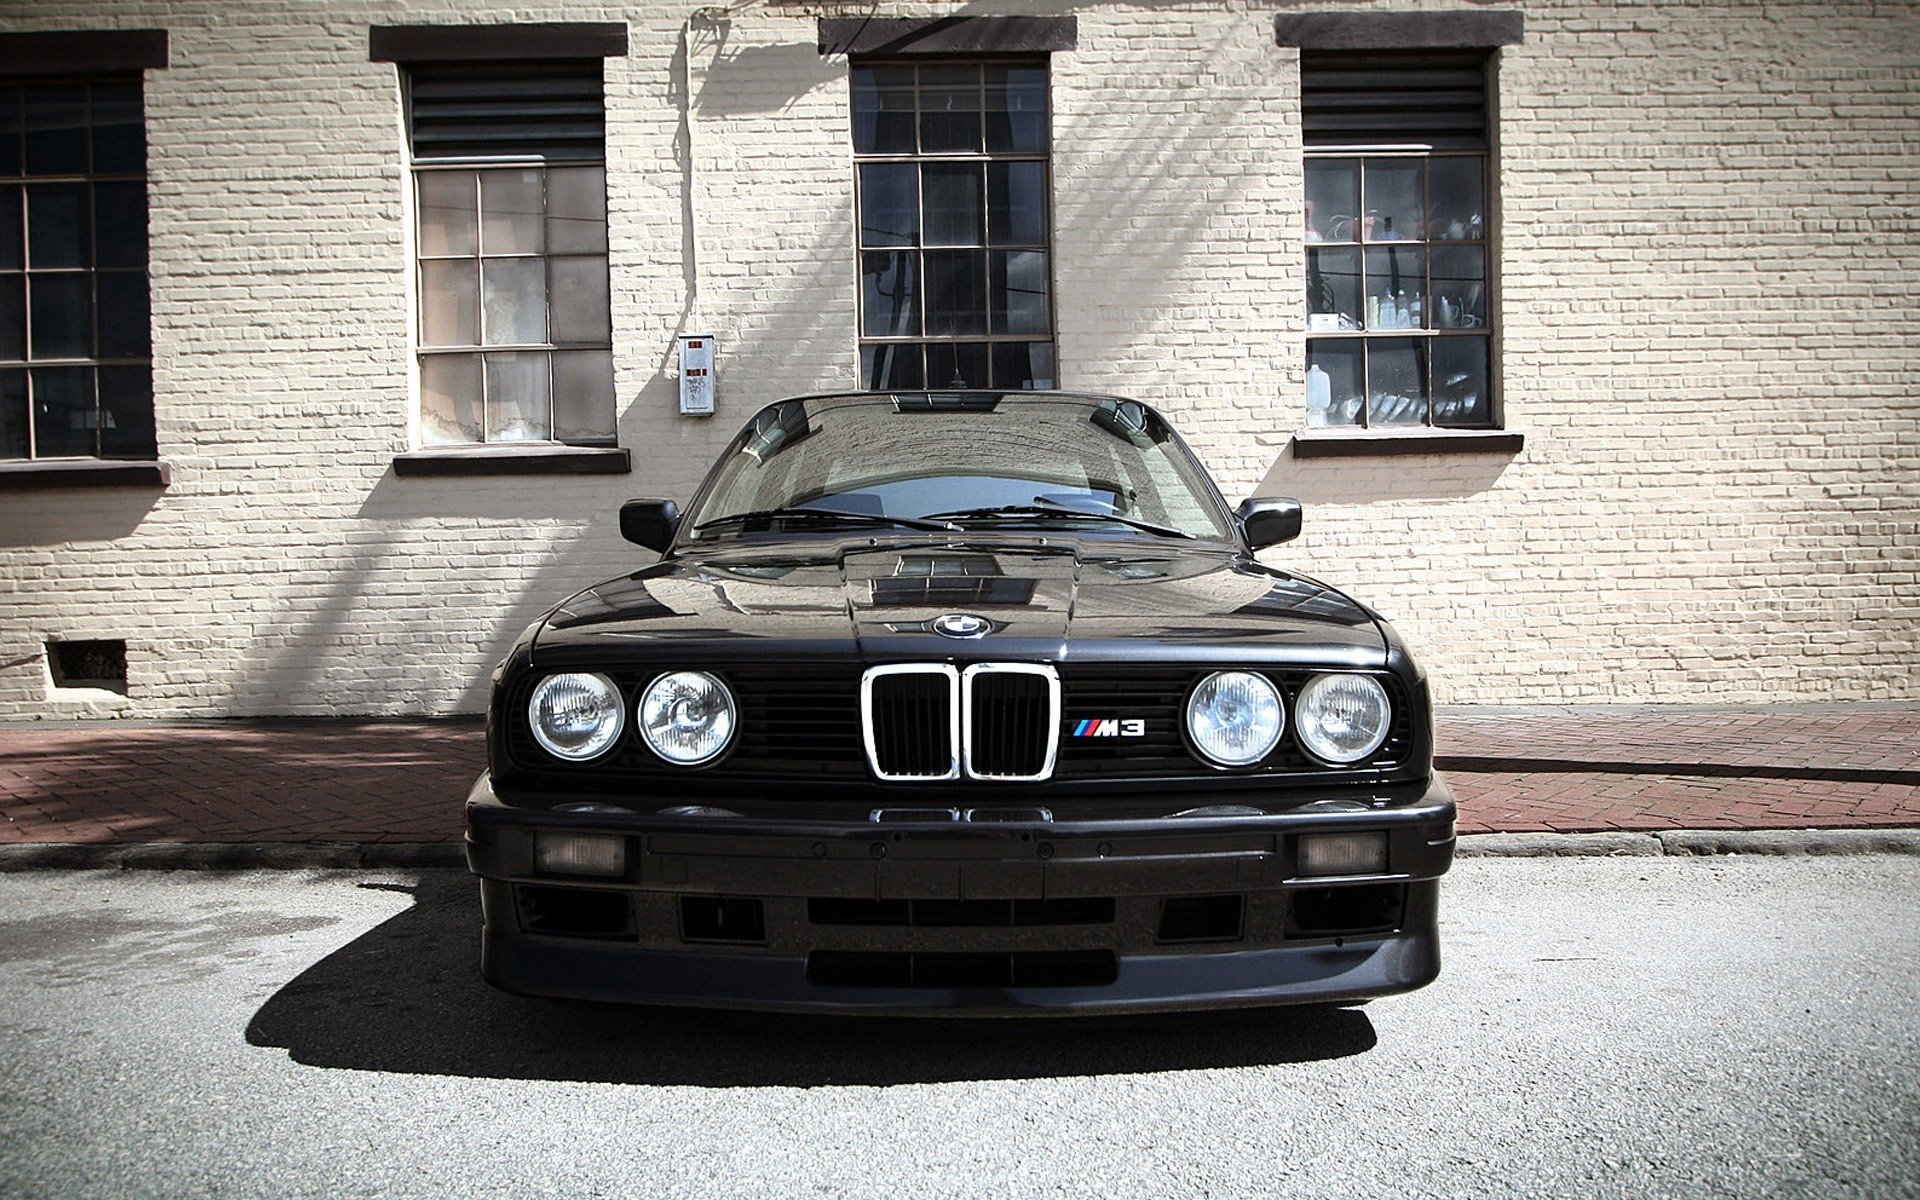 Bmw Wall Cars M3 E30 Wallpaper 1920x1200 283218 Wallpaperup